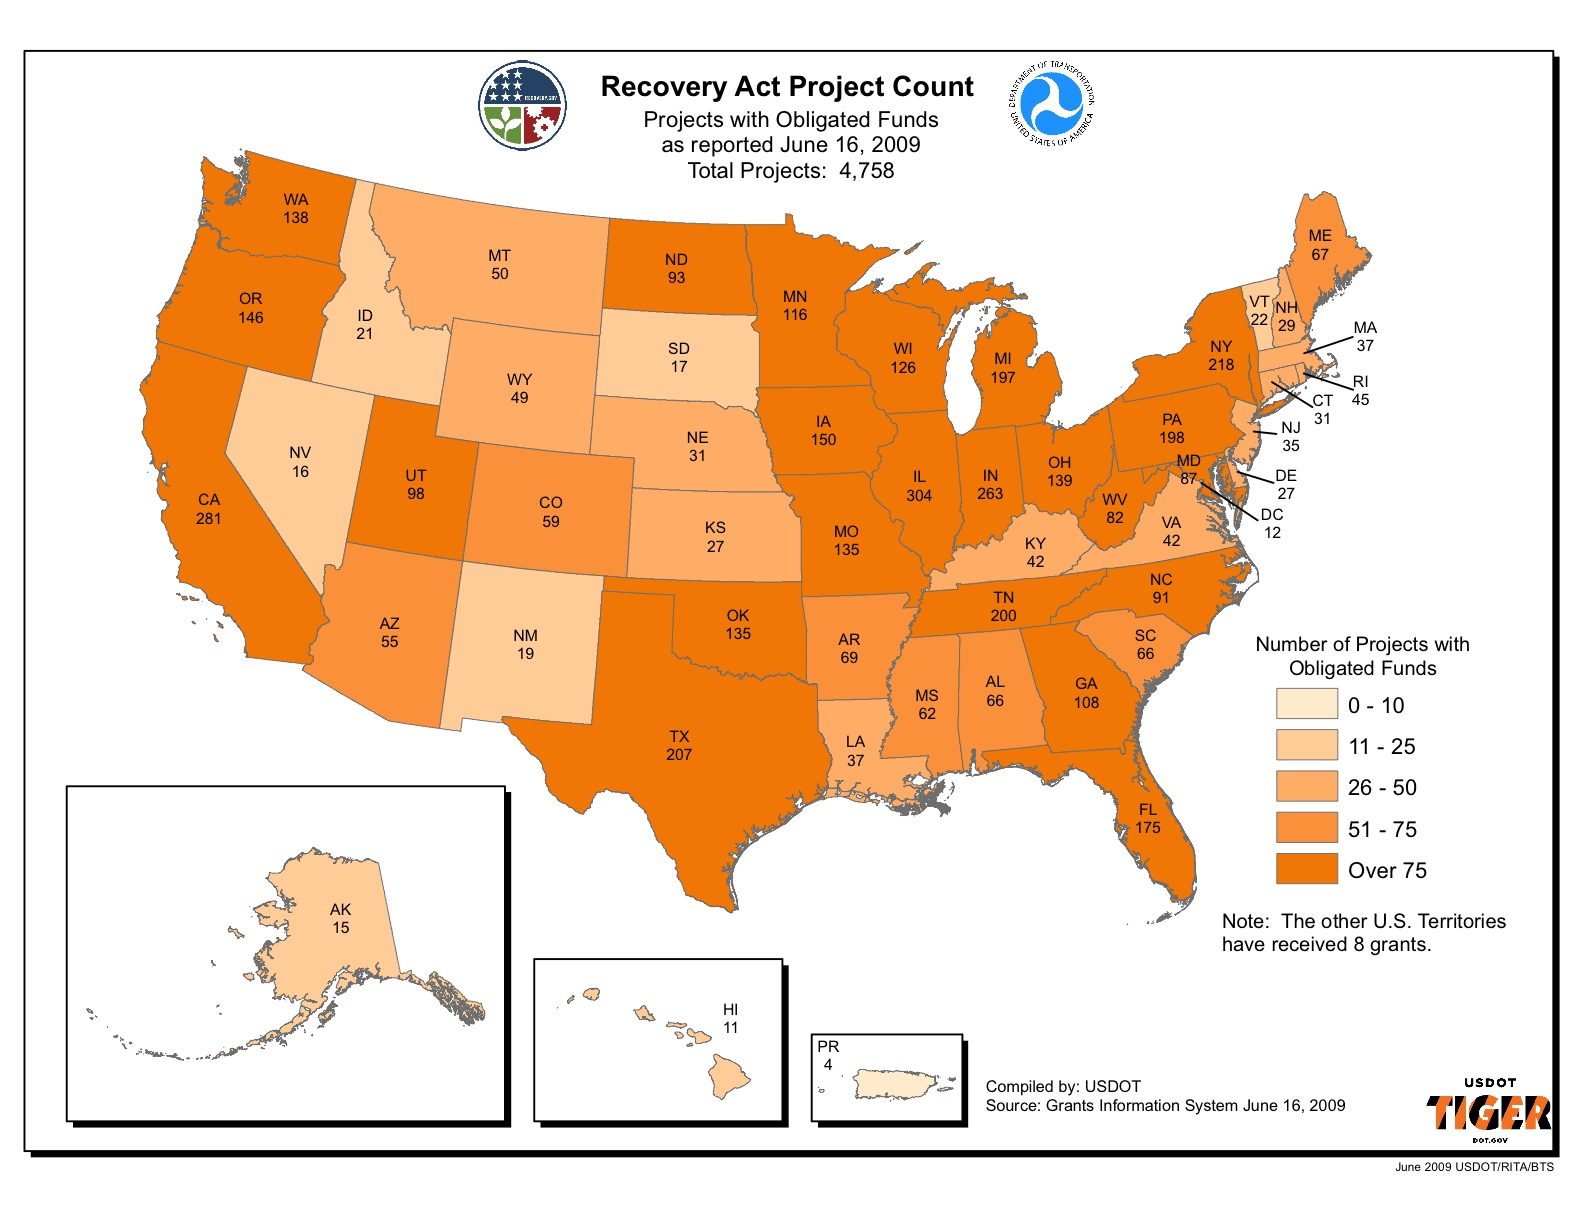 The U.S. DOT maintains the map below, which summarizes the number of Obligated projects at the state level